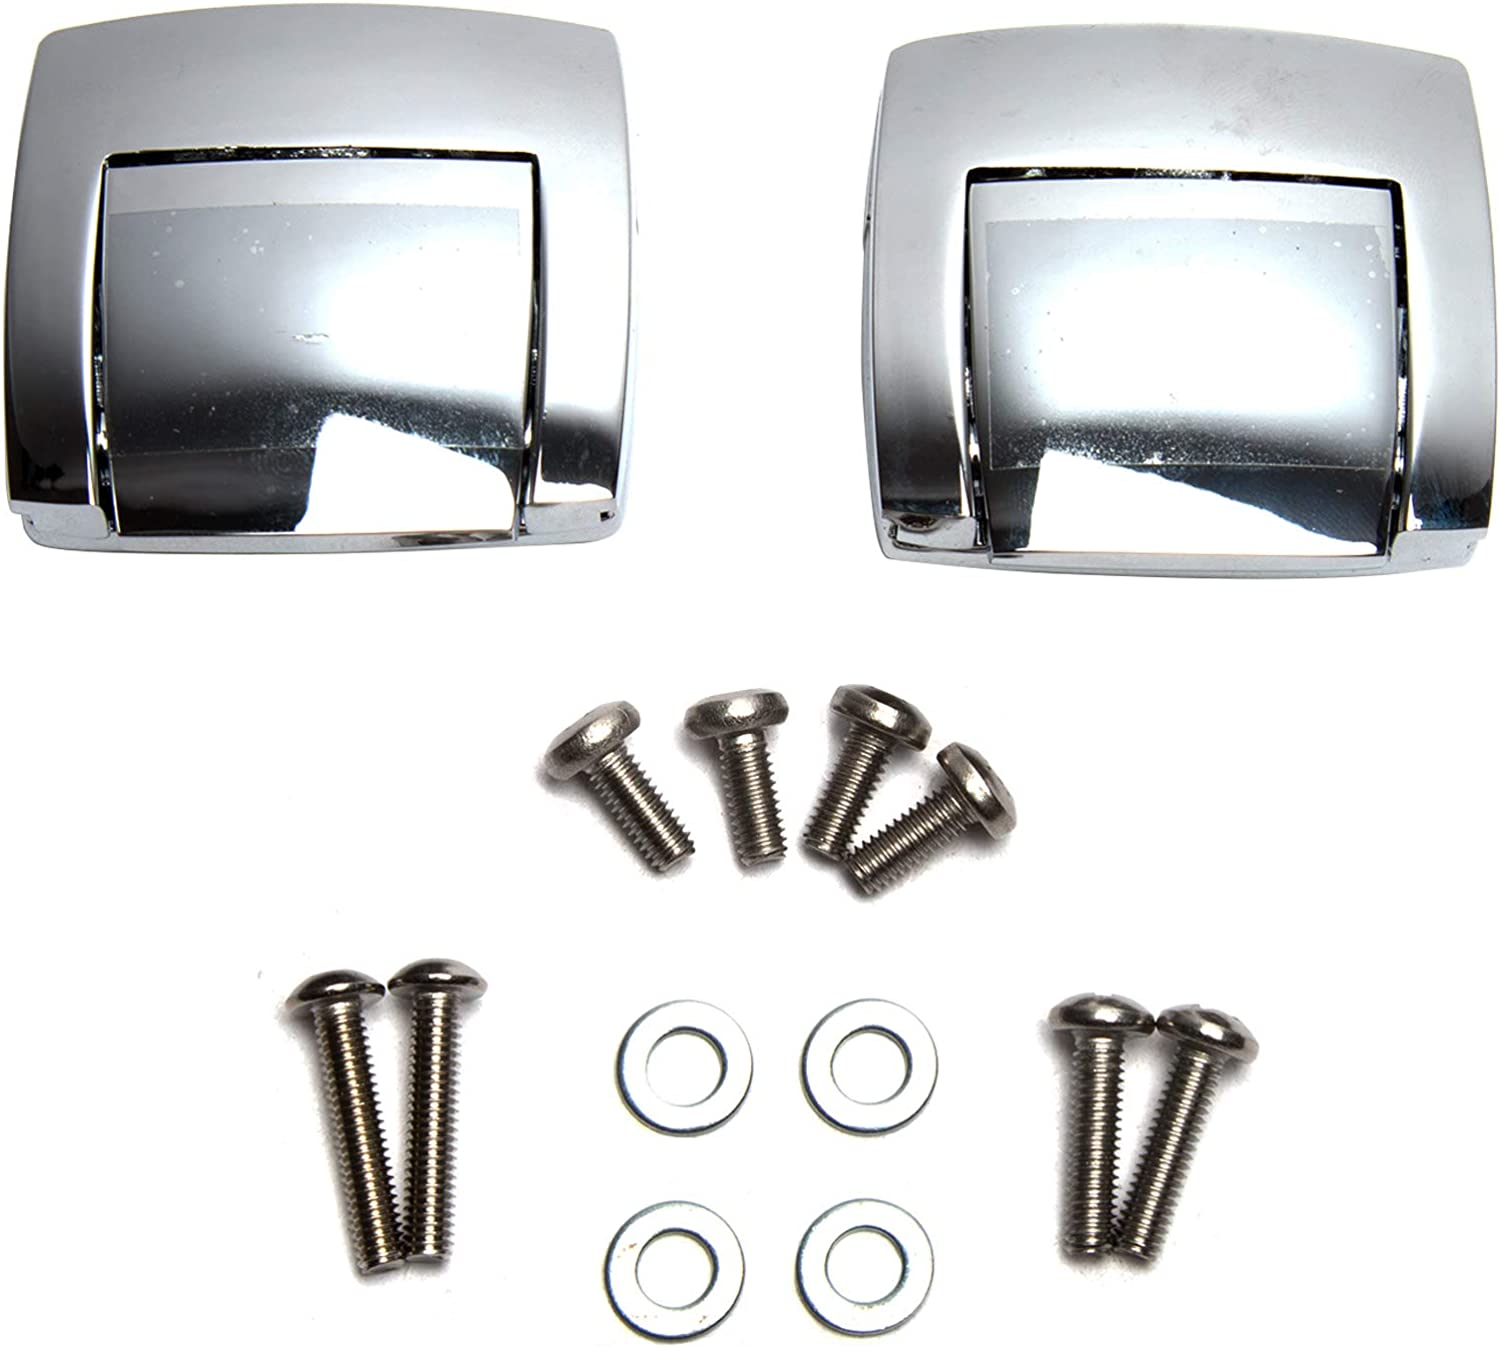 2x Chrome Latches Tour Pack Pak For Harley Classic Electra Glide Ultra 1988-2013